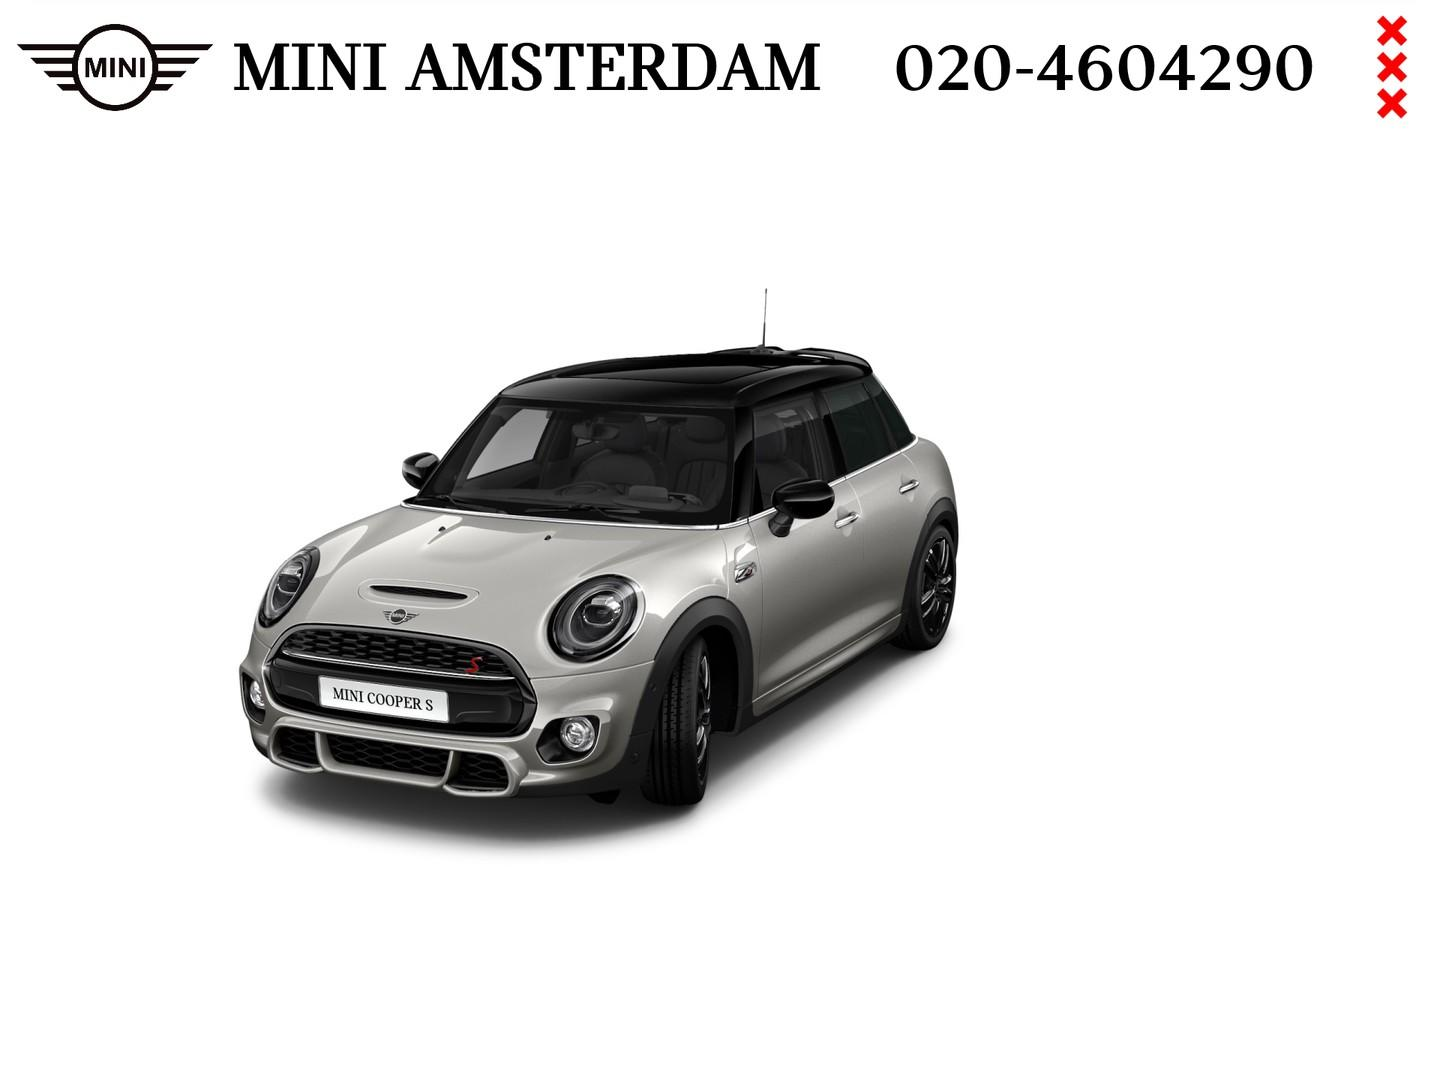 Mini 5-deurs 2.0 cooper s hammersmith edition serious business